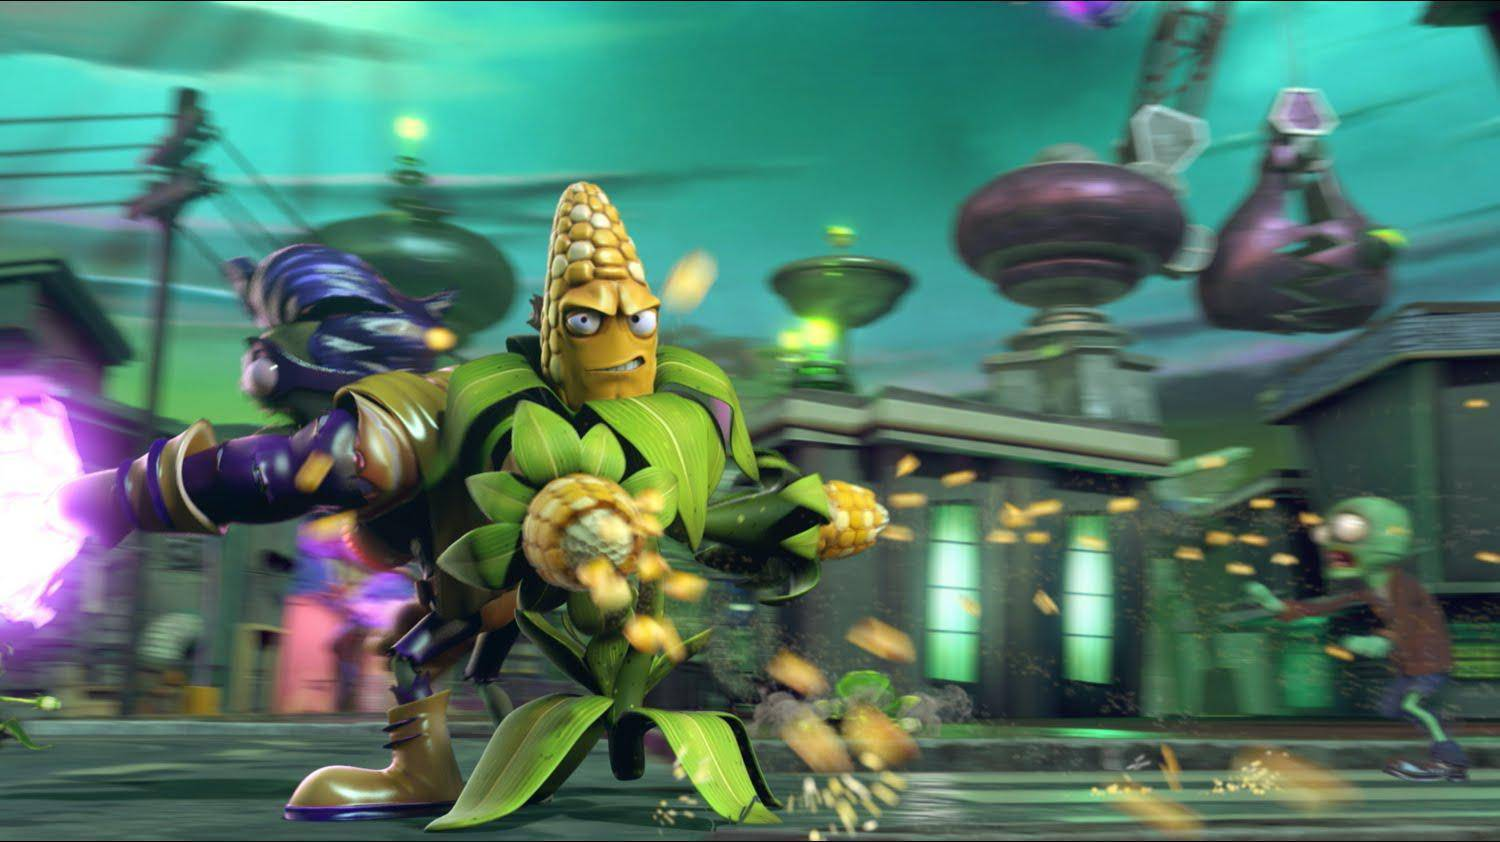 Buy plants vs zombies garden warfare 2 ps4 compare prices Plants vs zombies garden warfare 2 event calendar